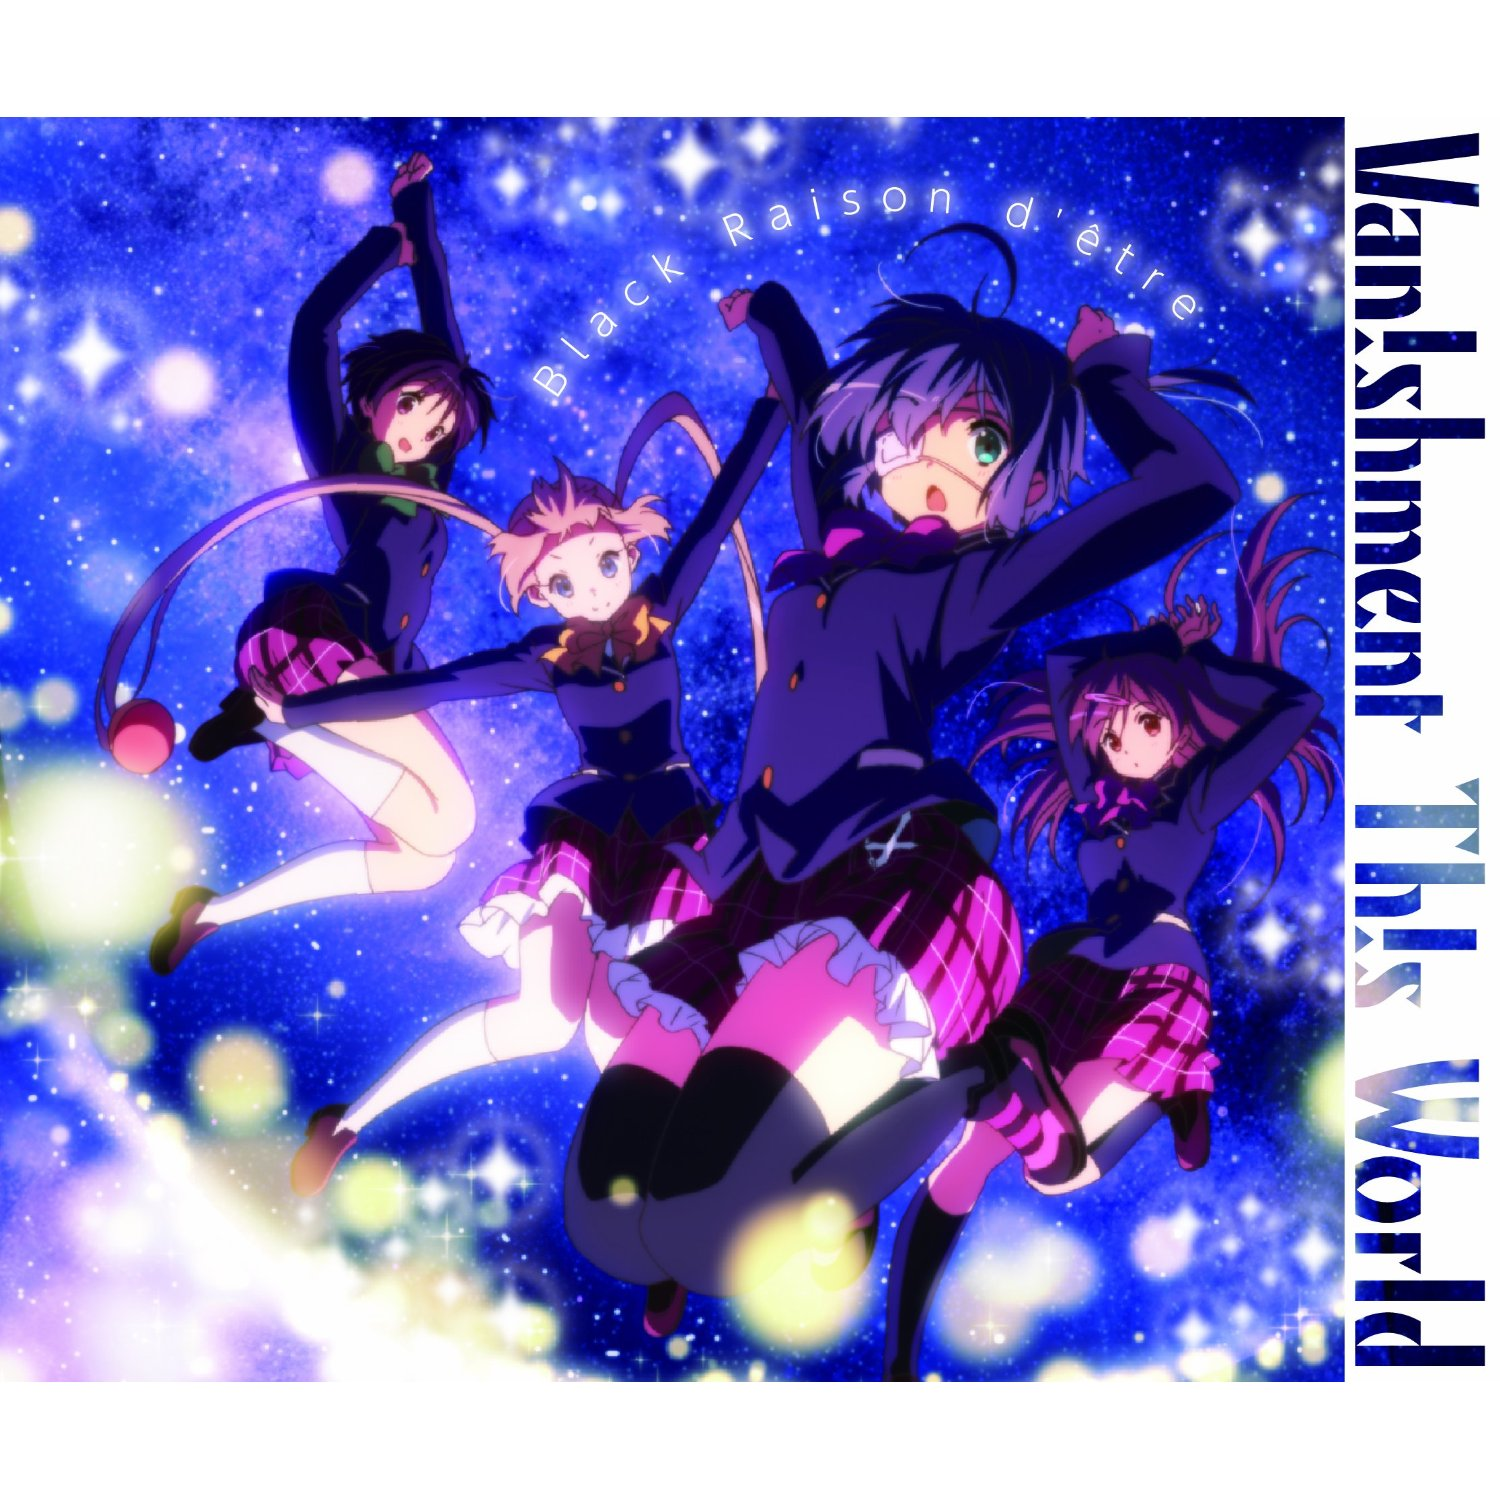 Van!shment this world